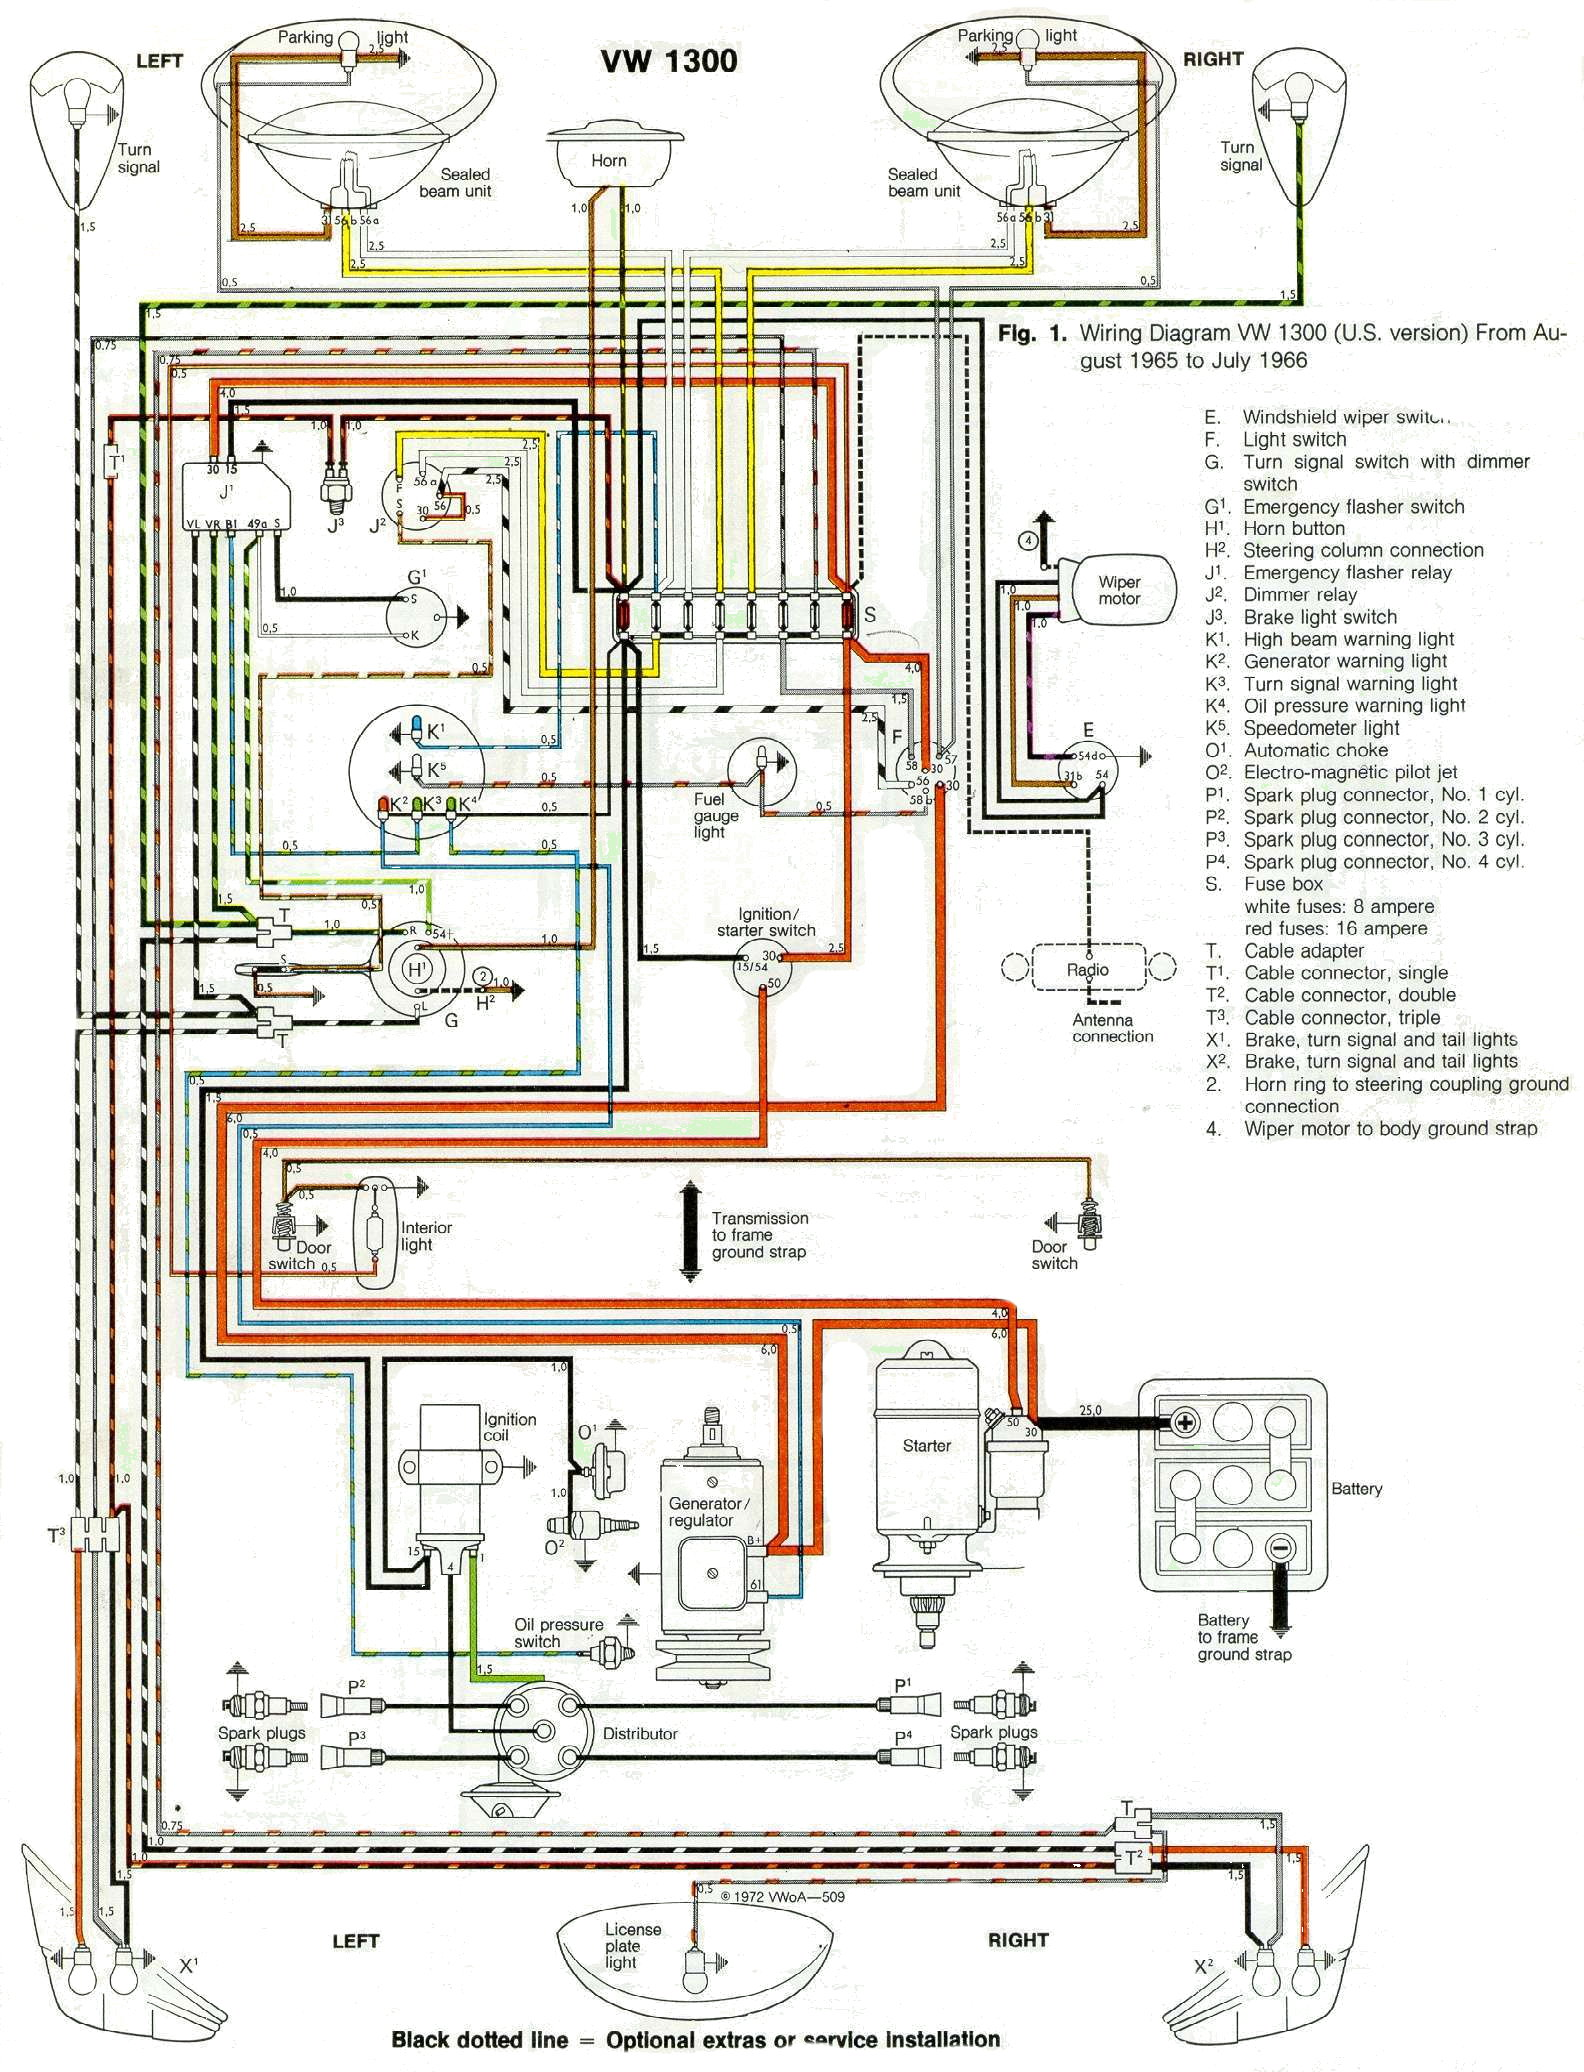 1966 wiring diagram rh 1966vwbeetle com vw beetle wire diagram vw beetle wiring diagram 1972